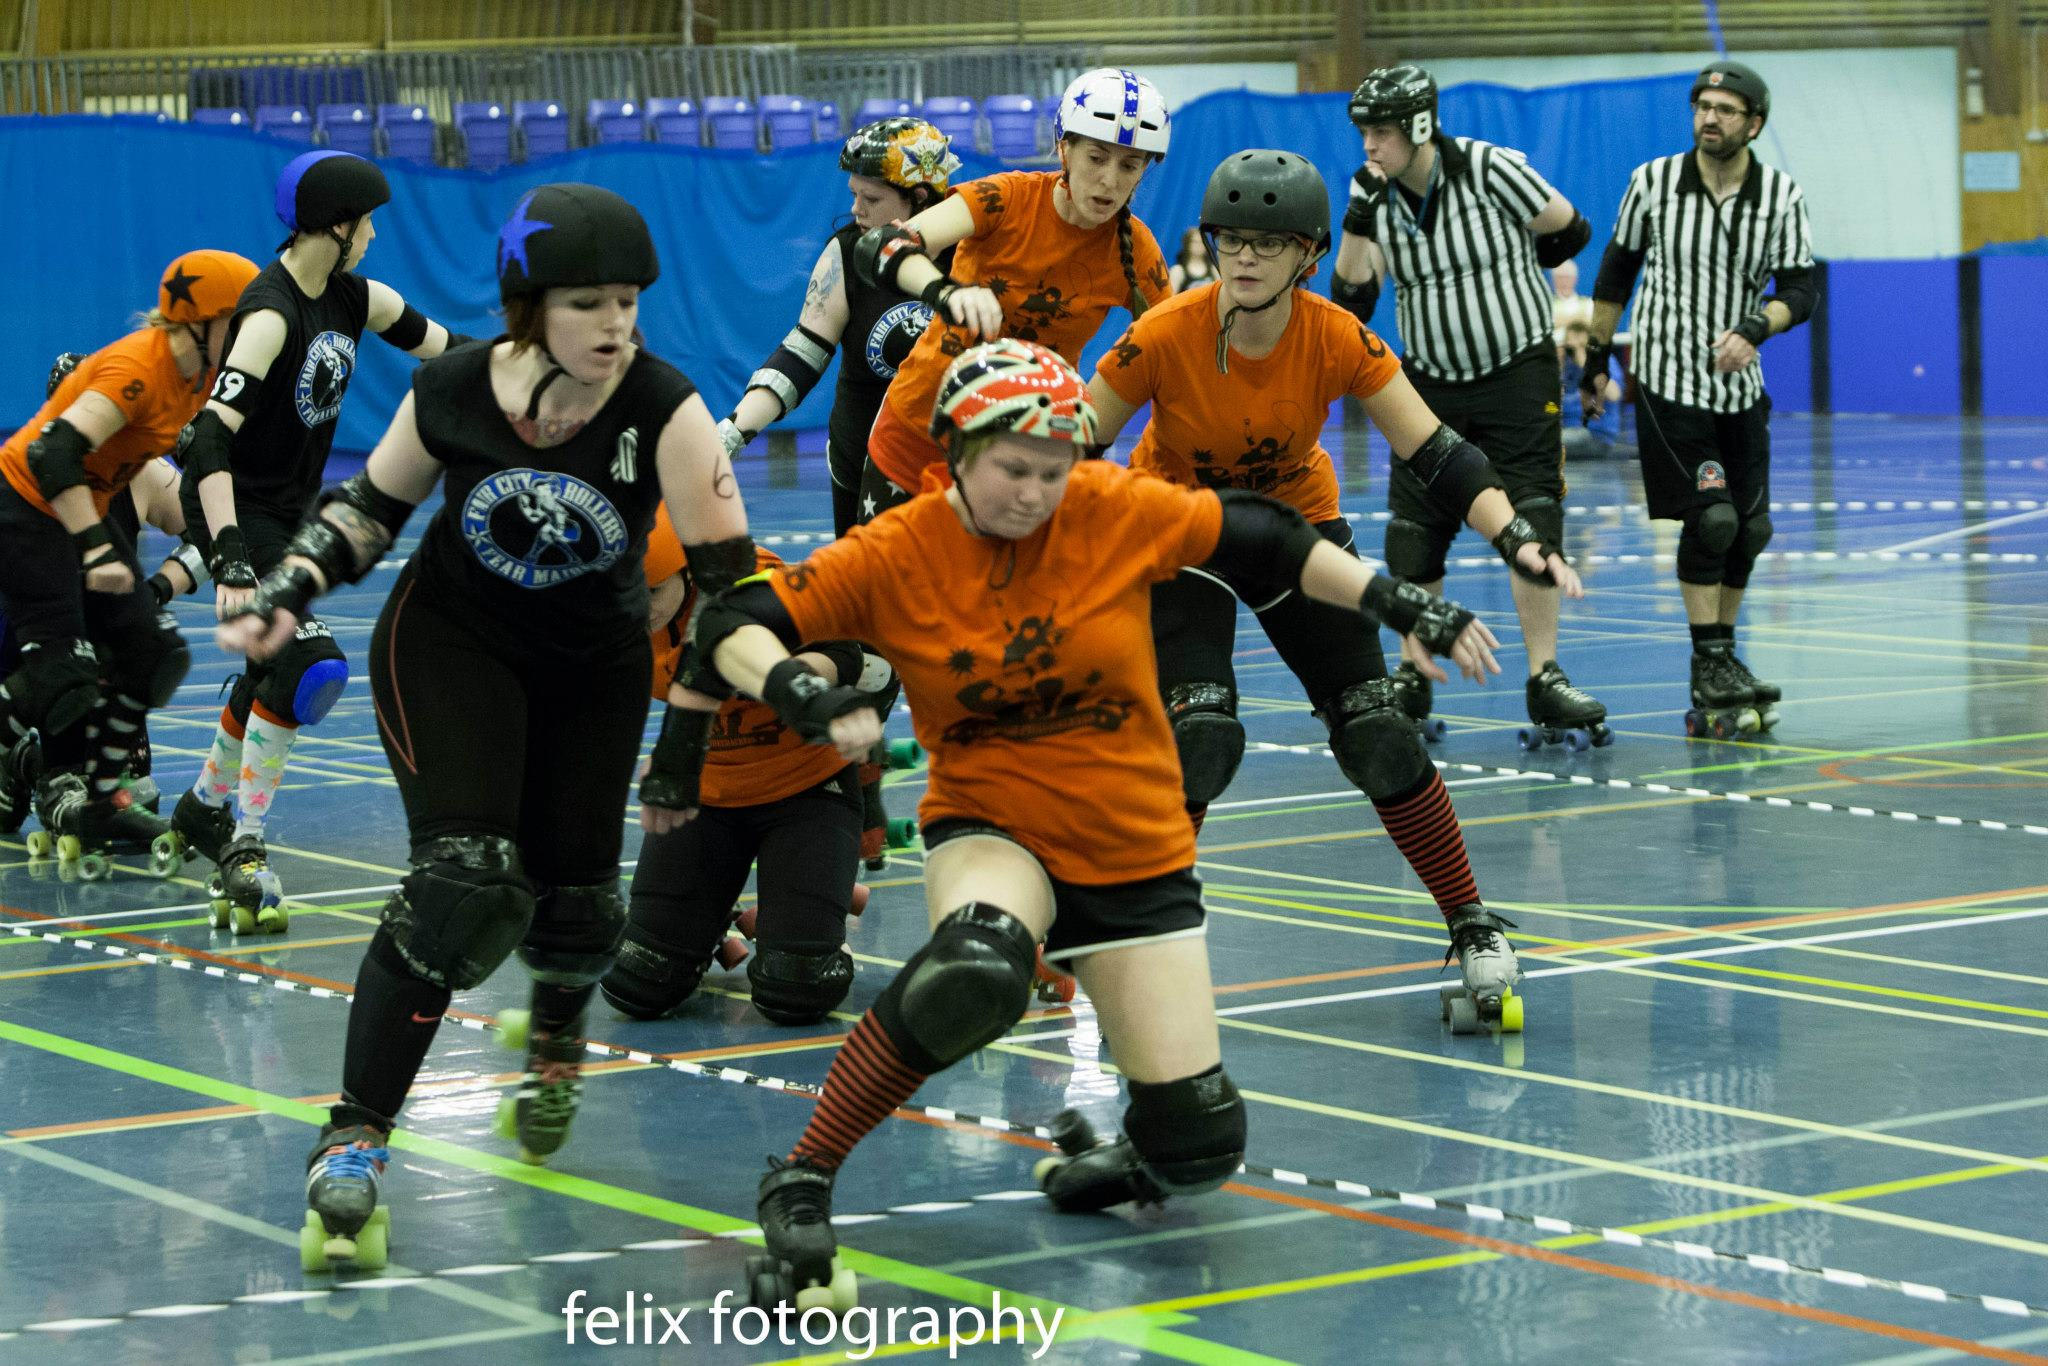 Pistol Panties and the rest of FCR vs Furness Firecrackers. (Photo by Ian Mccreadie)